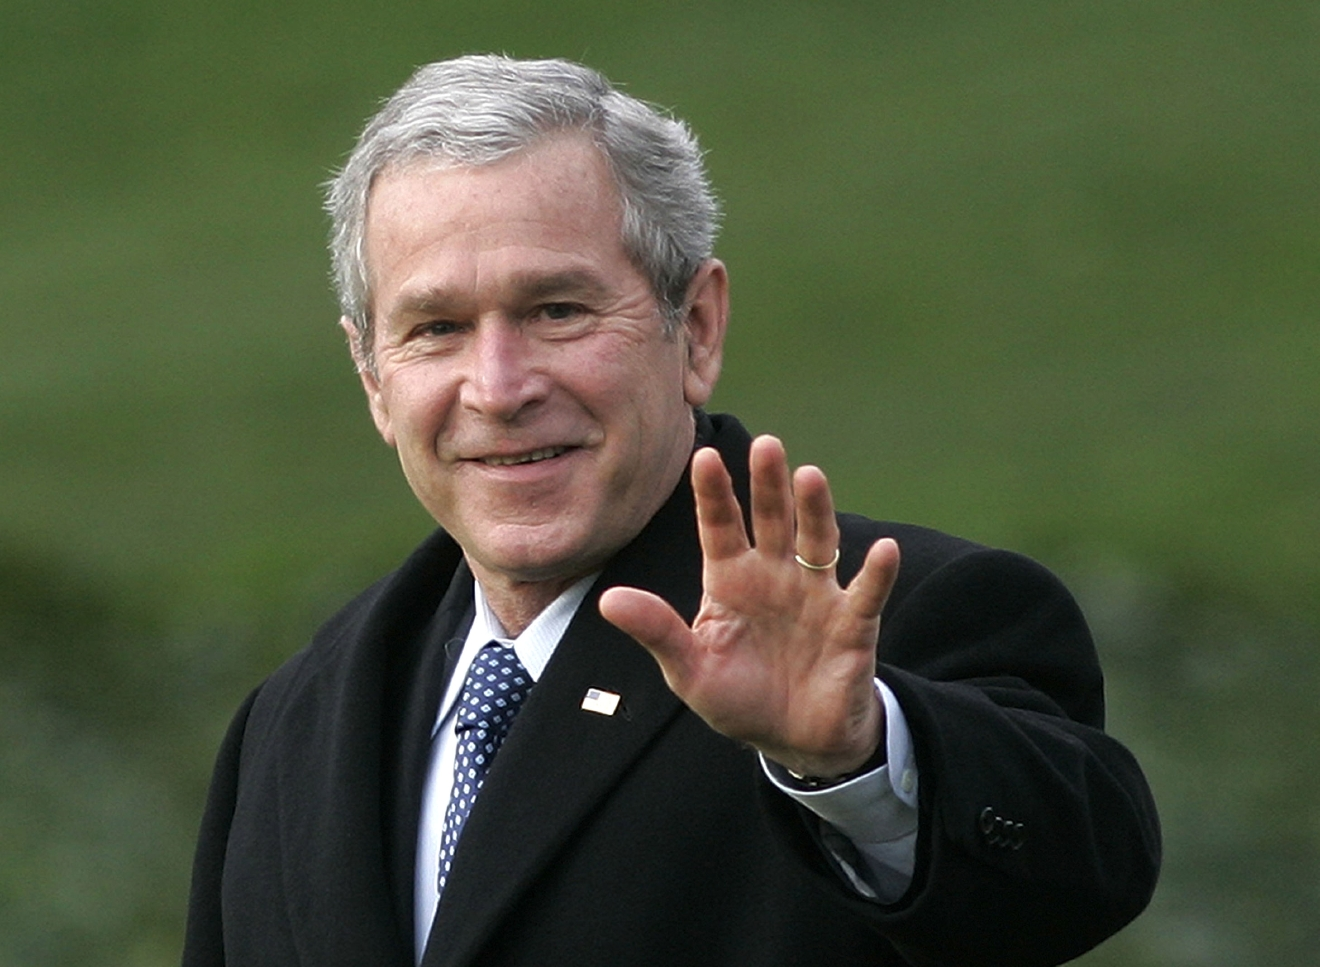 FILE-- In a Jan. 25, 2007 file photo President George W. Bush waves as he departs the White House in Washington for a trip to Missouri to speak on healthcare.  The eight-year Bush presidency has merited no more than a fleeting reference in the current GOP contest for the presidential nomination,   (AP Photo/Ron Edmonds/file)